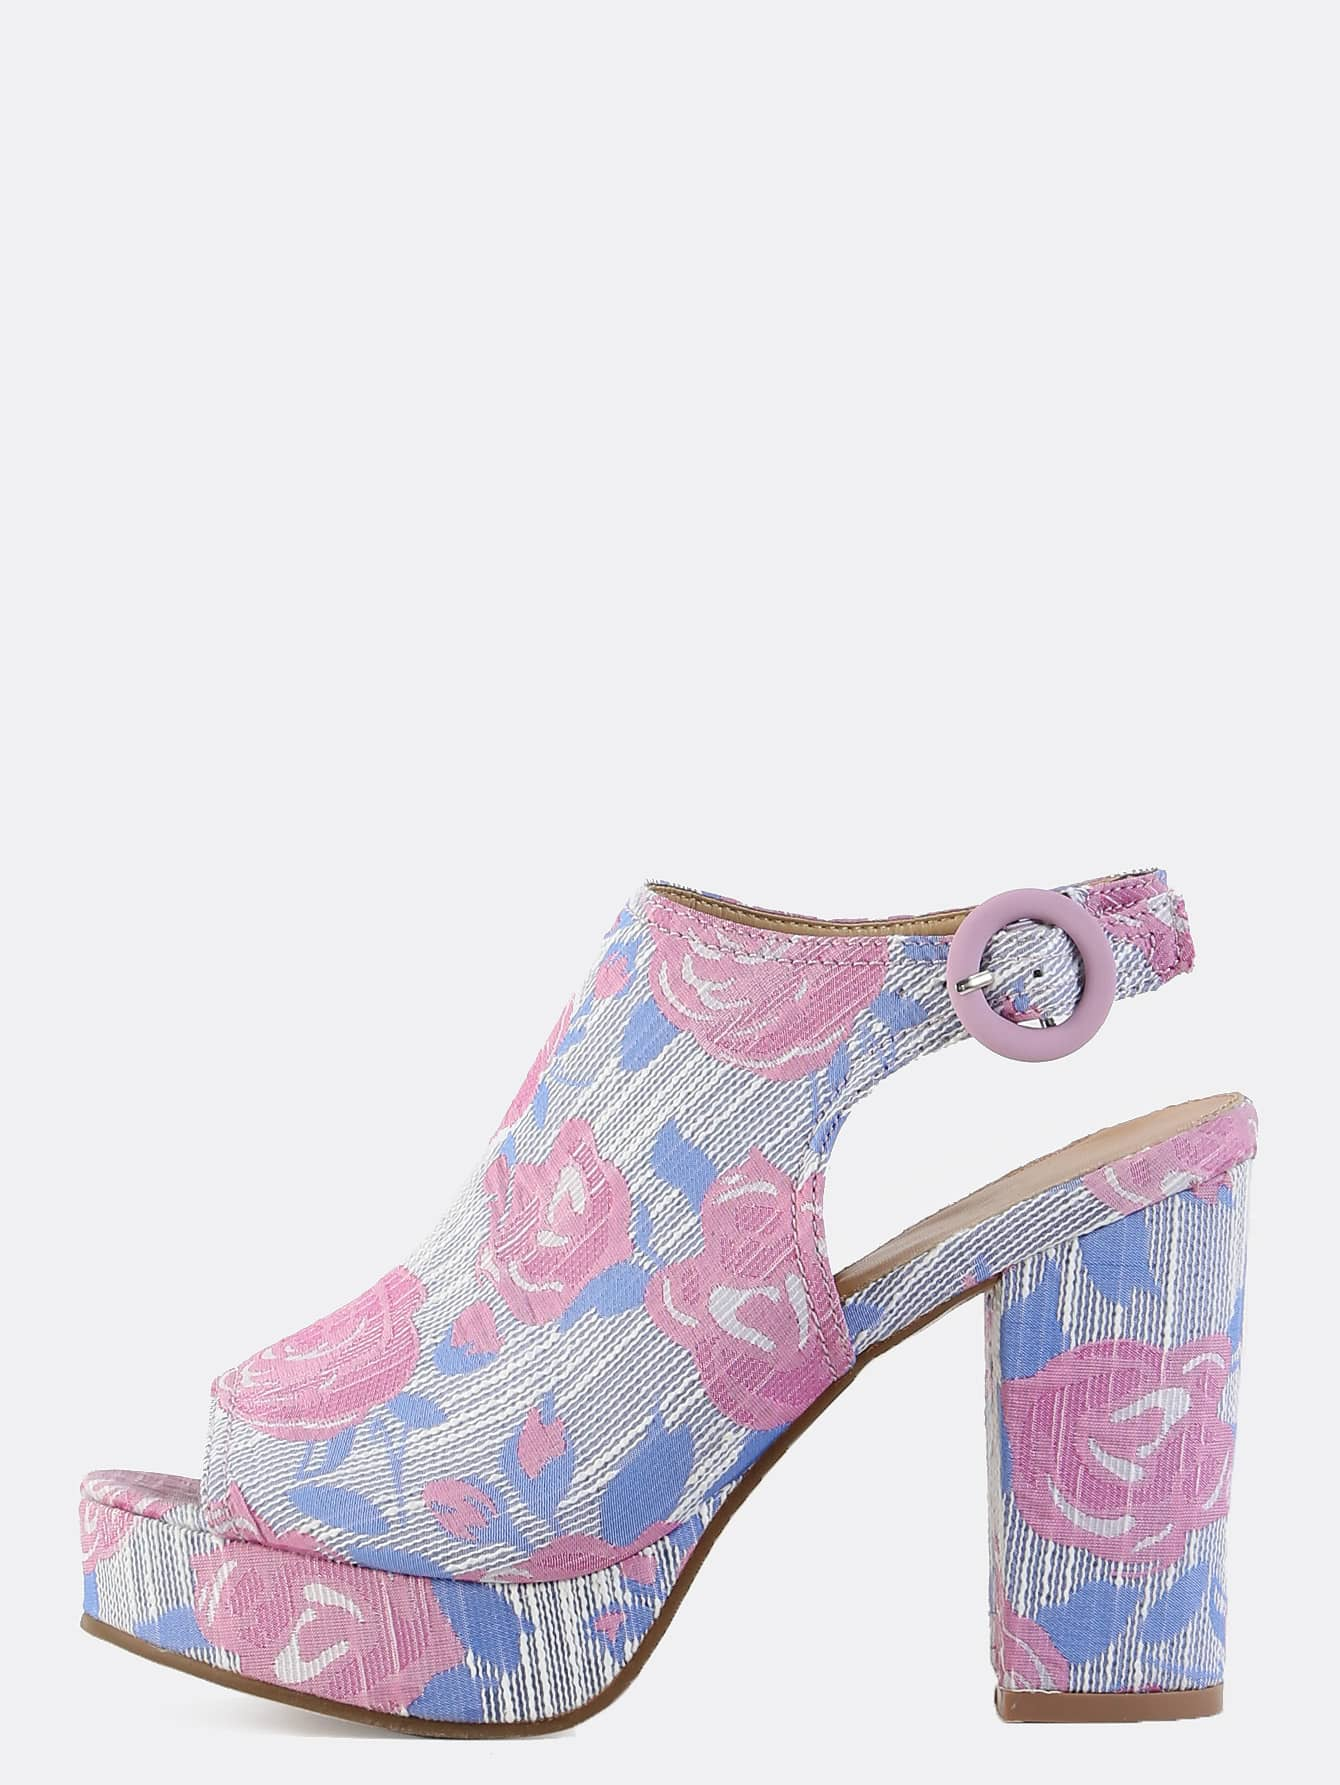 high heel shoe chair value city ghost stool slingback pastel floral chunky mules lavender shein